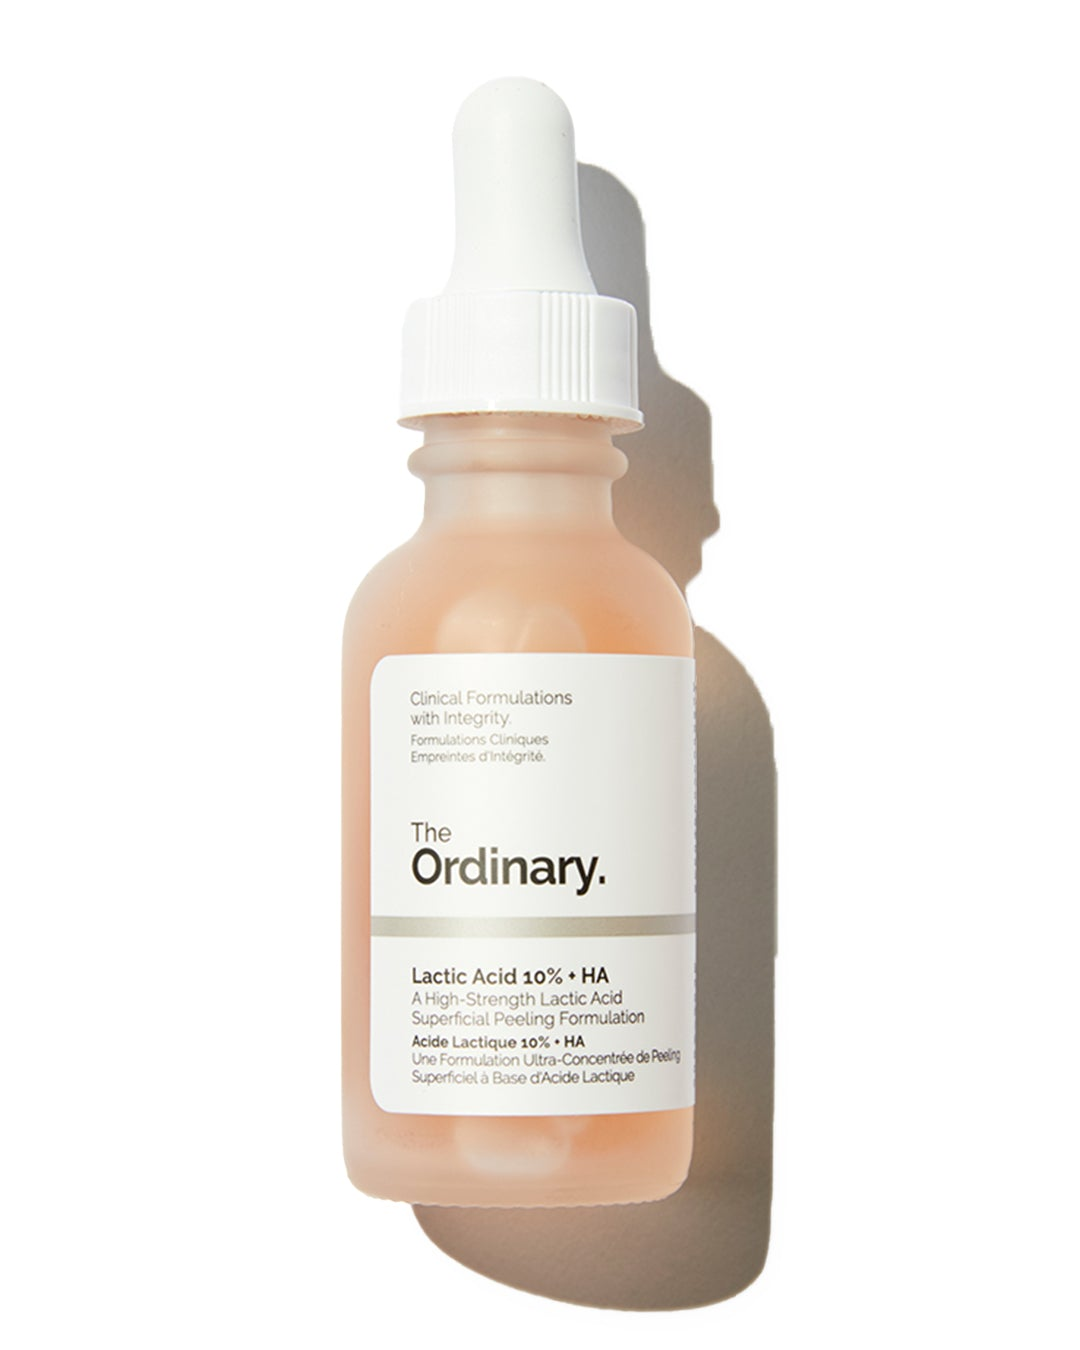 The Ordinary | Lactic Acid 10% + HA | Exfoliant